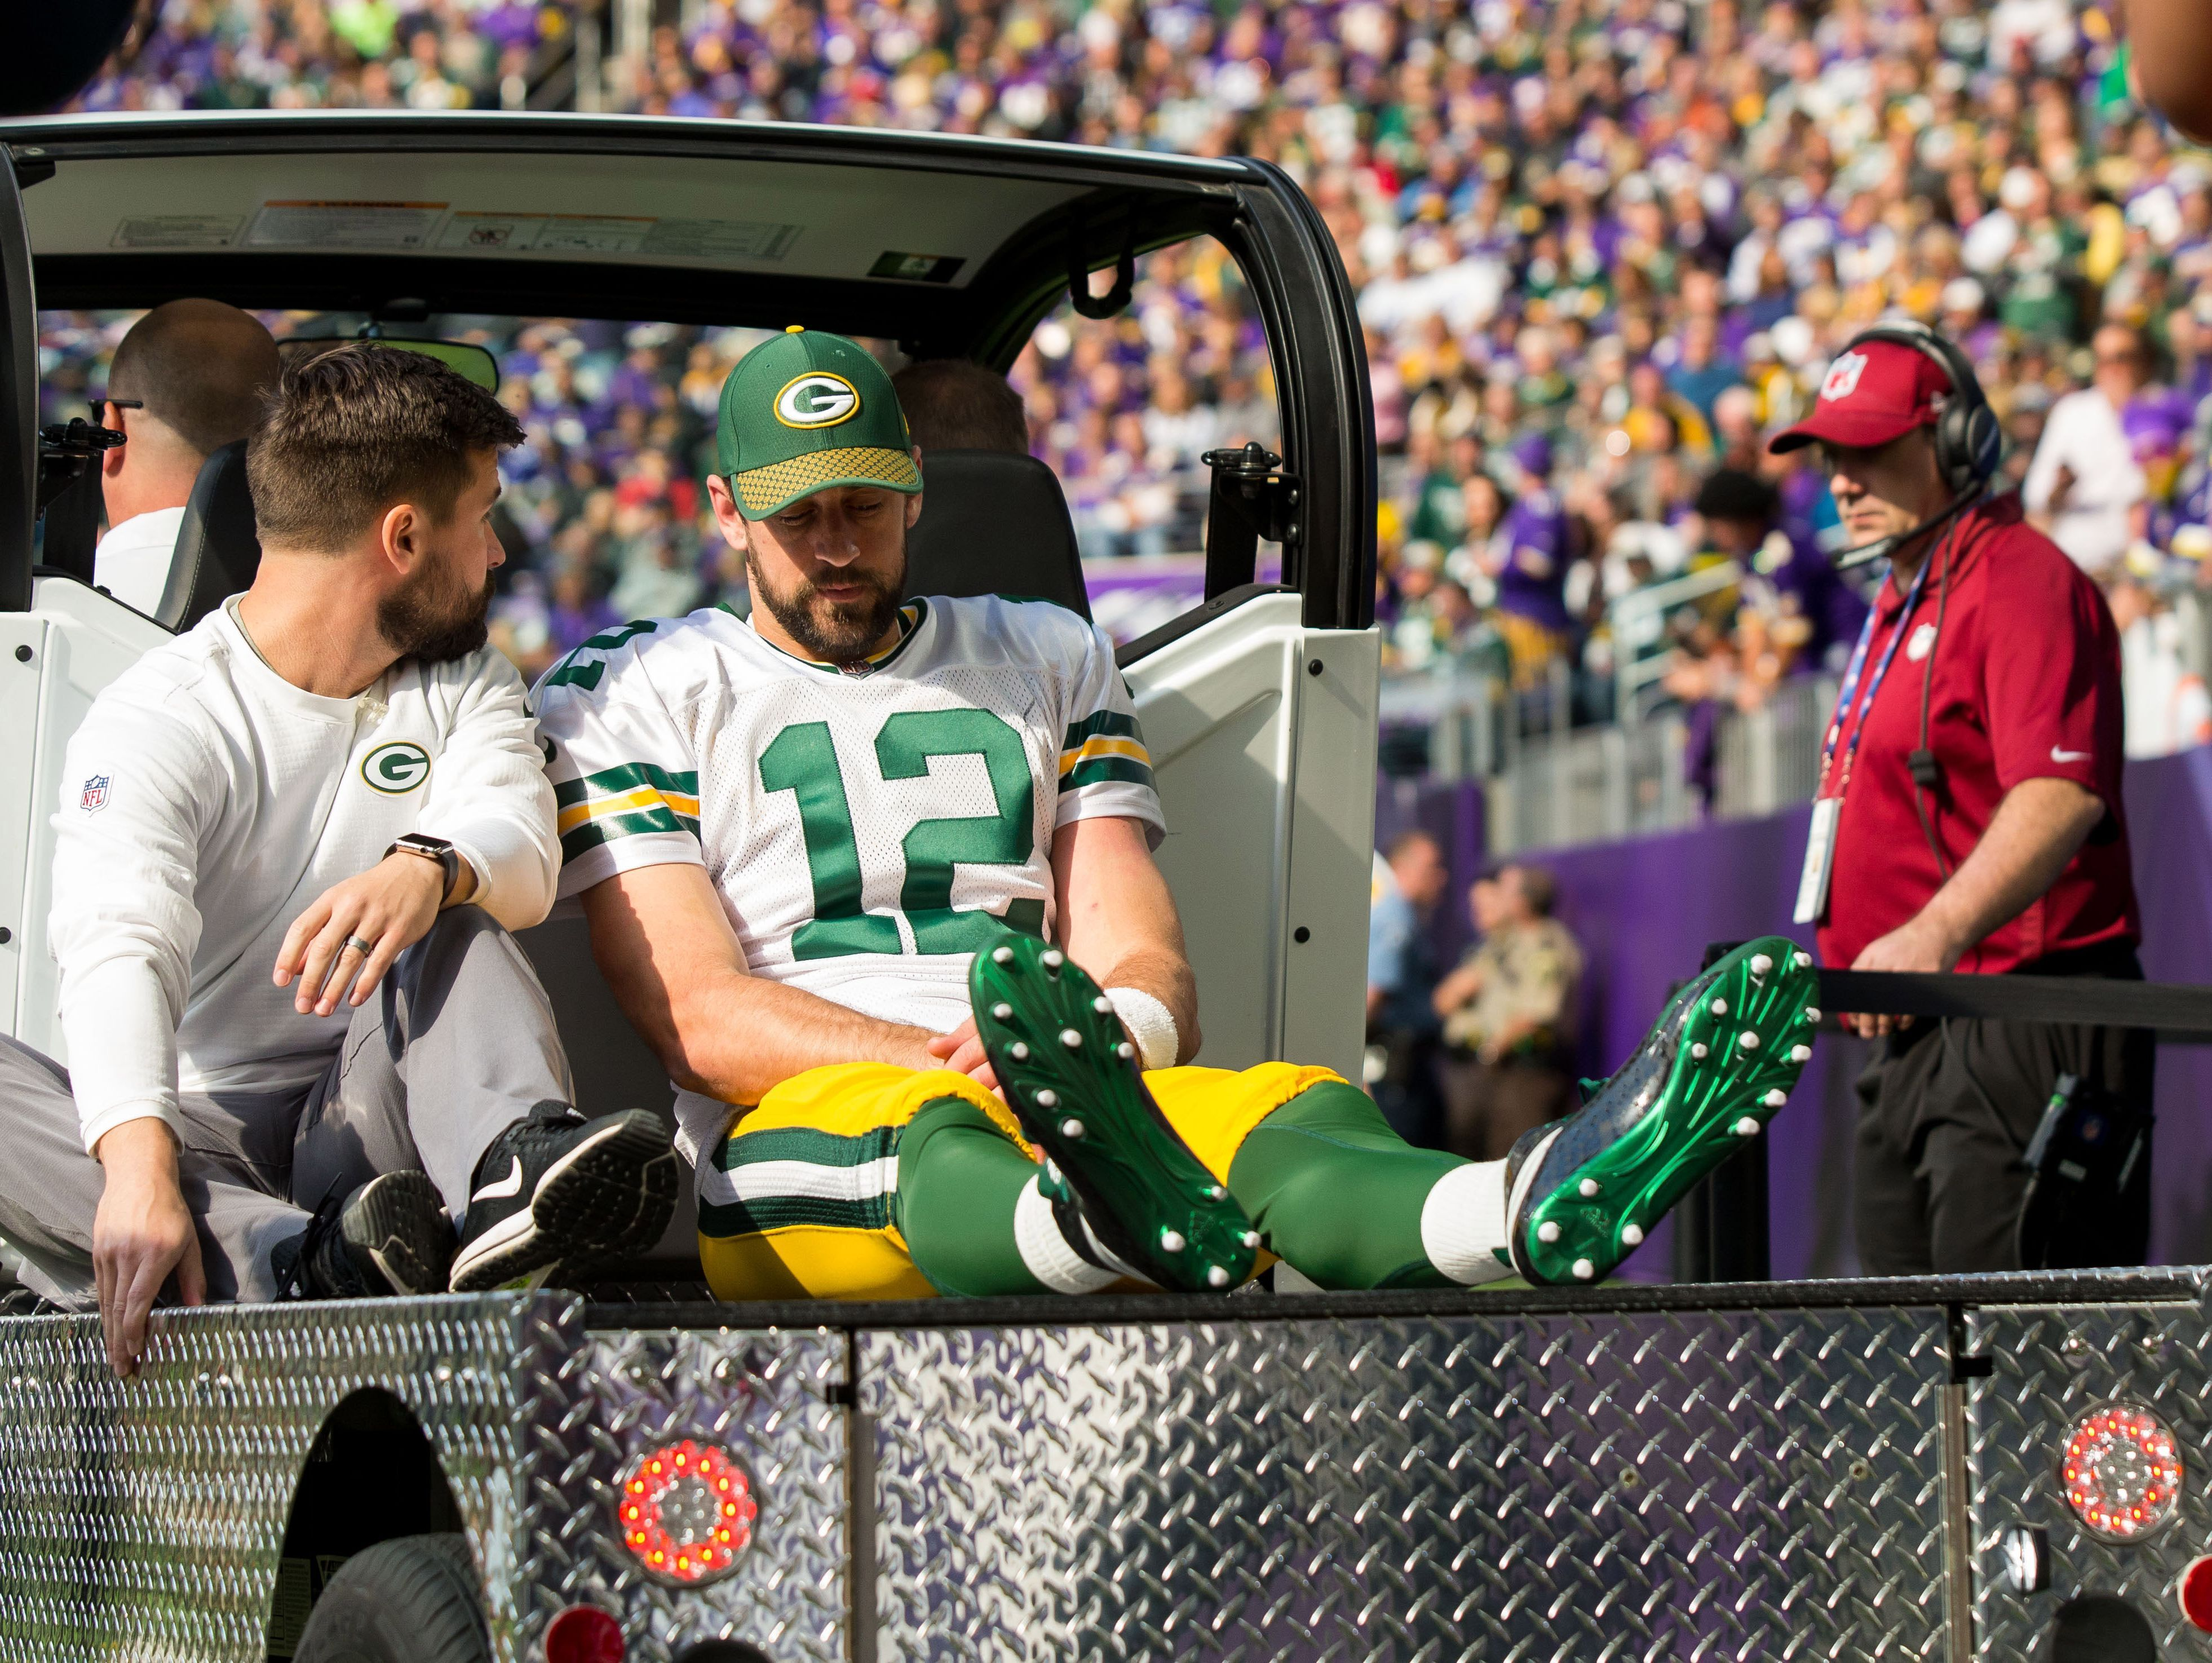 Aaron Rodgers Could Miss Rest Of Packers Season With Broken Collarbone Aaron Rodgers Fantasy Football Shirt Packers Season